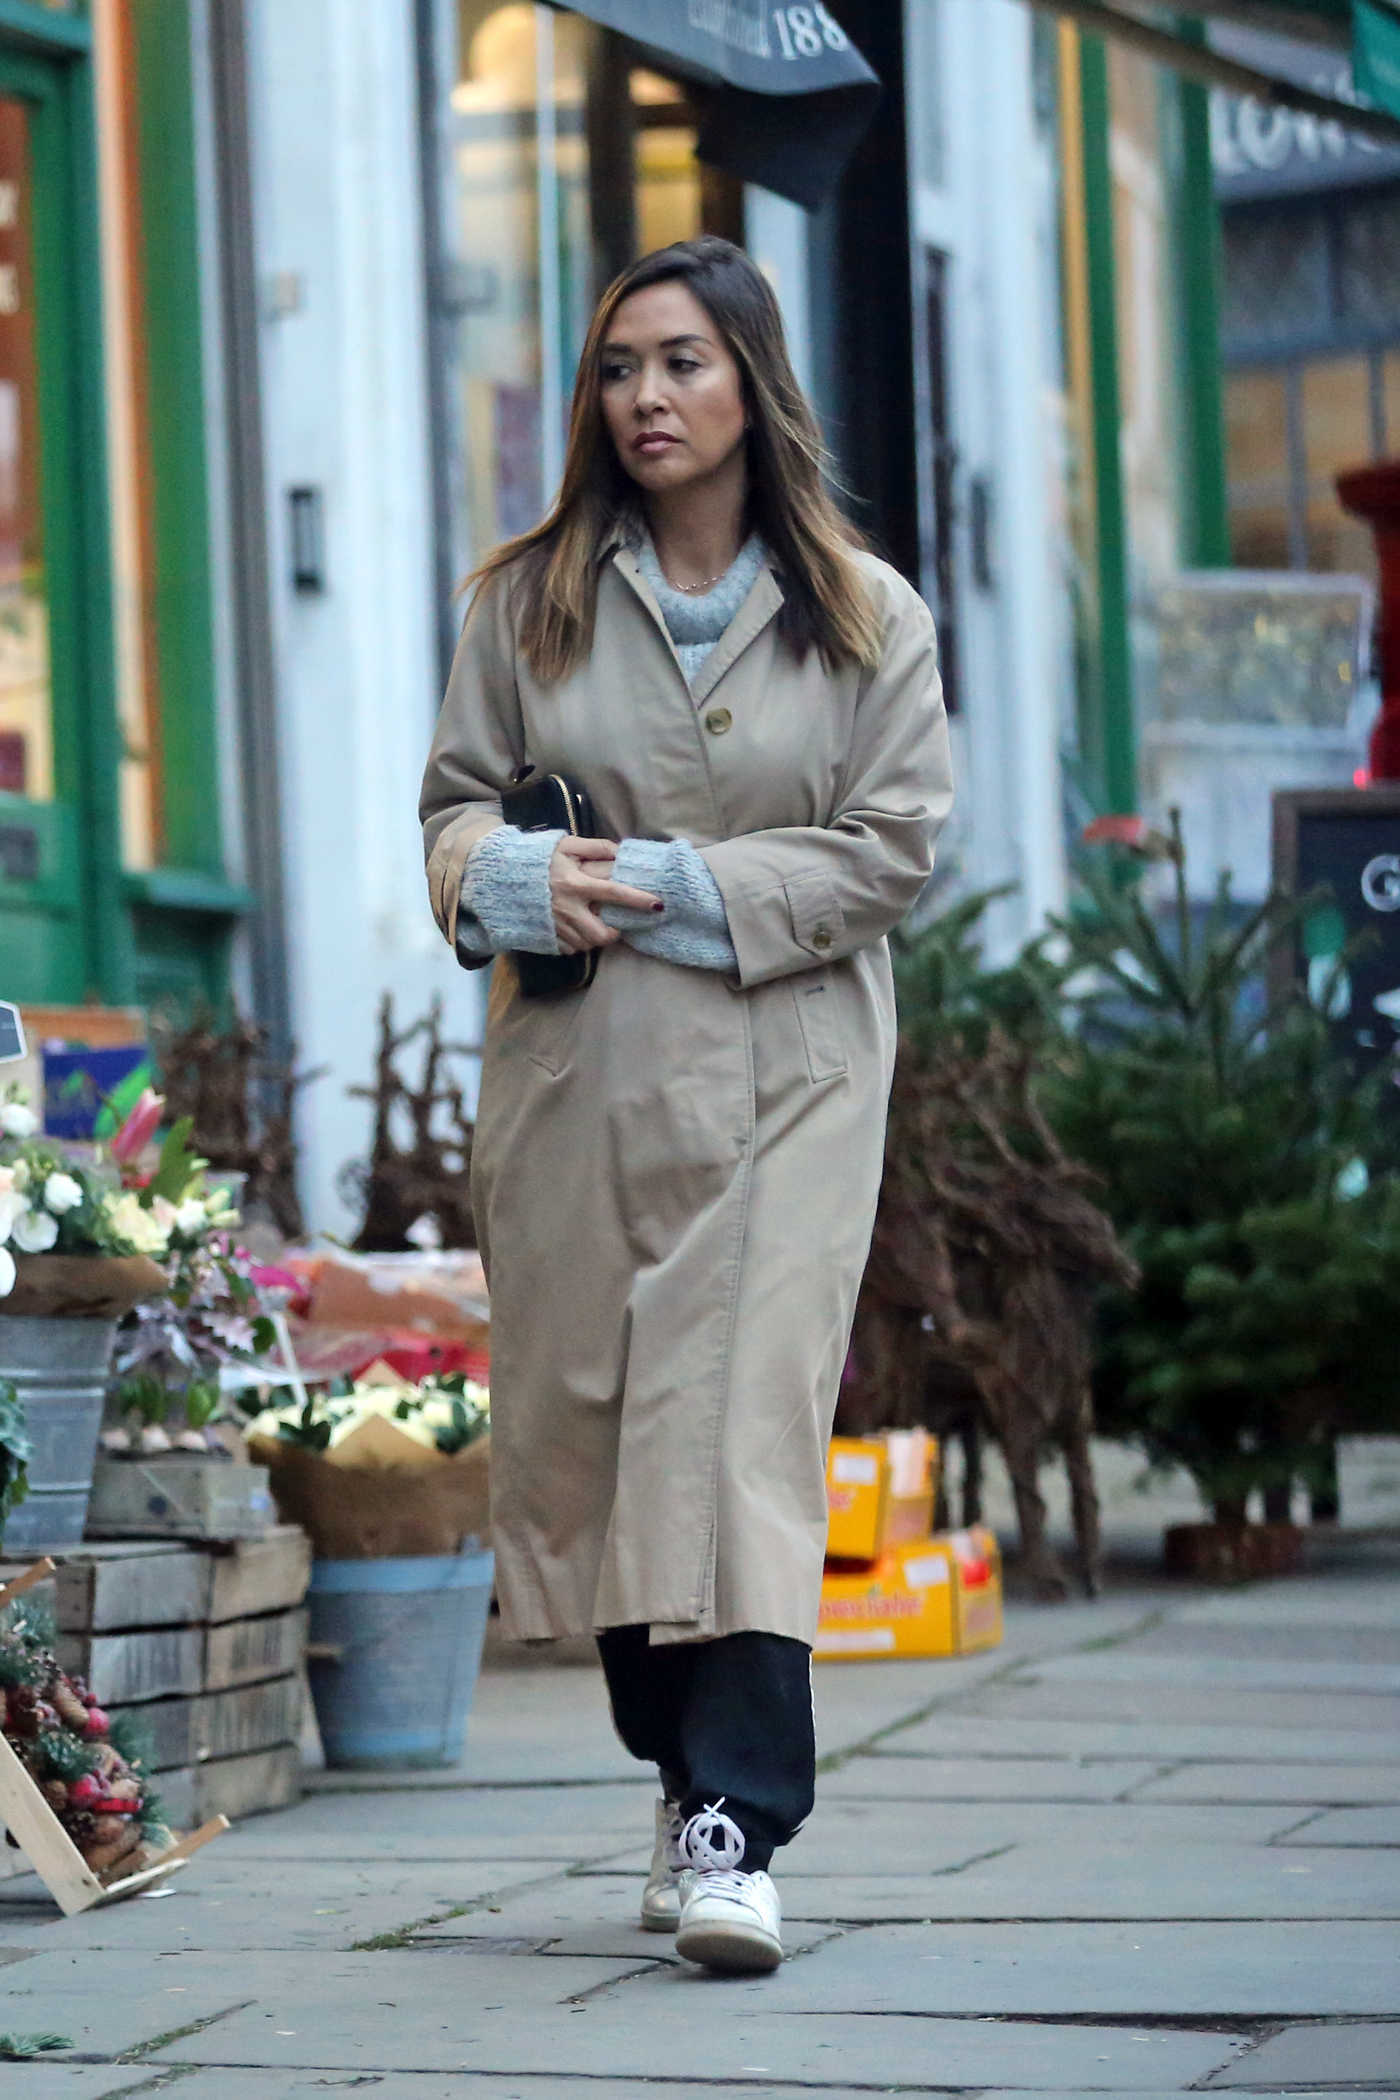 Myleene Klass in a Beige Trench Coat Was Seen Out in North London 11/26/2018